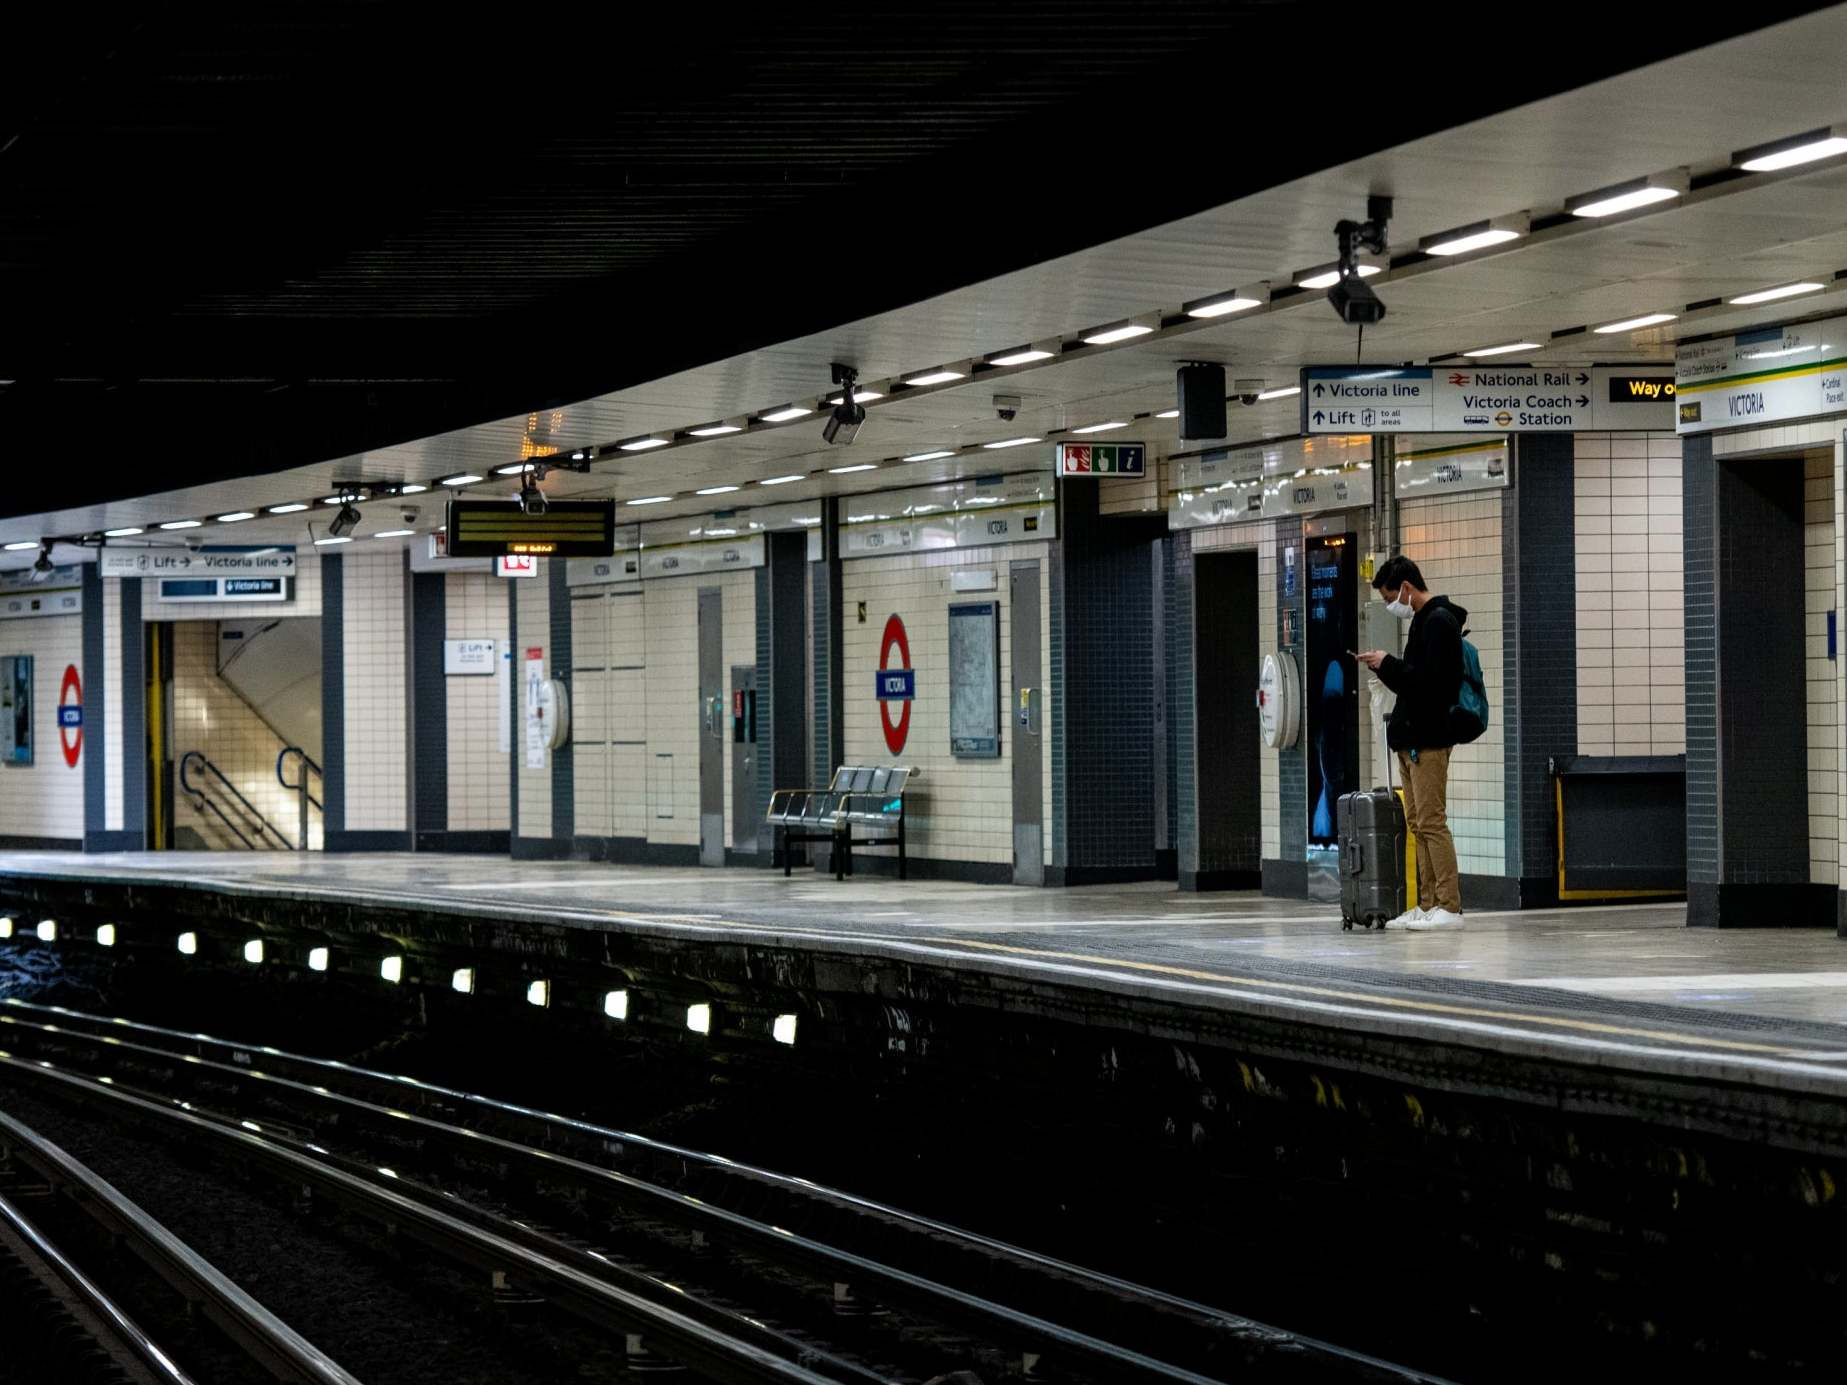 Last-minute Tube rescue deal means fare hikes for London passengers